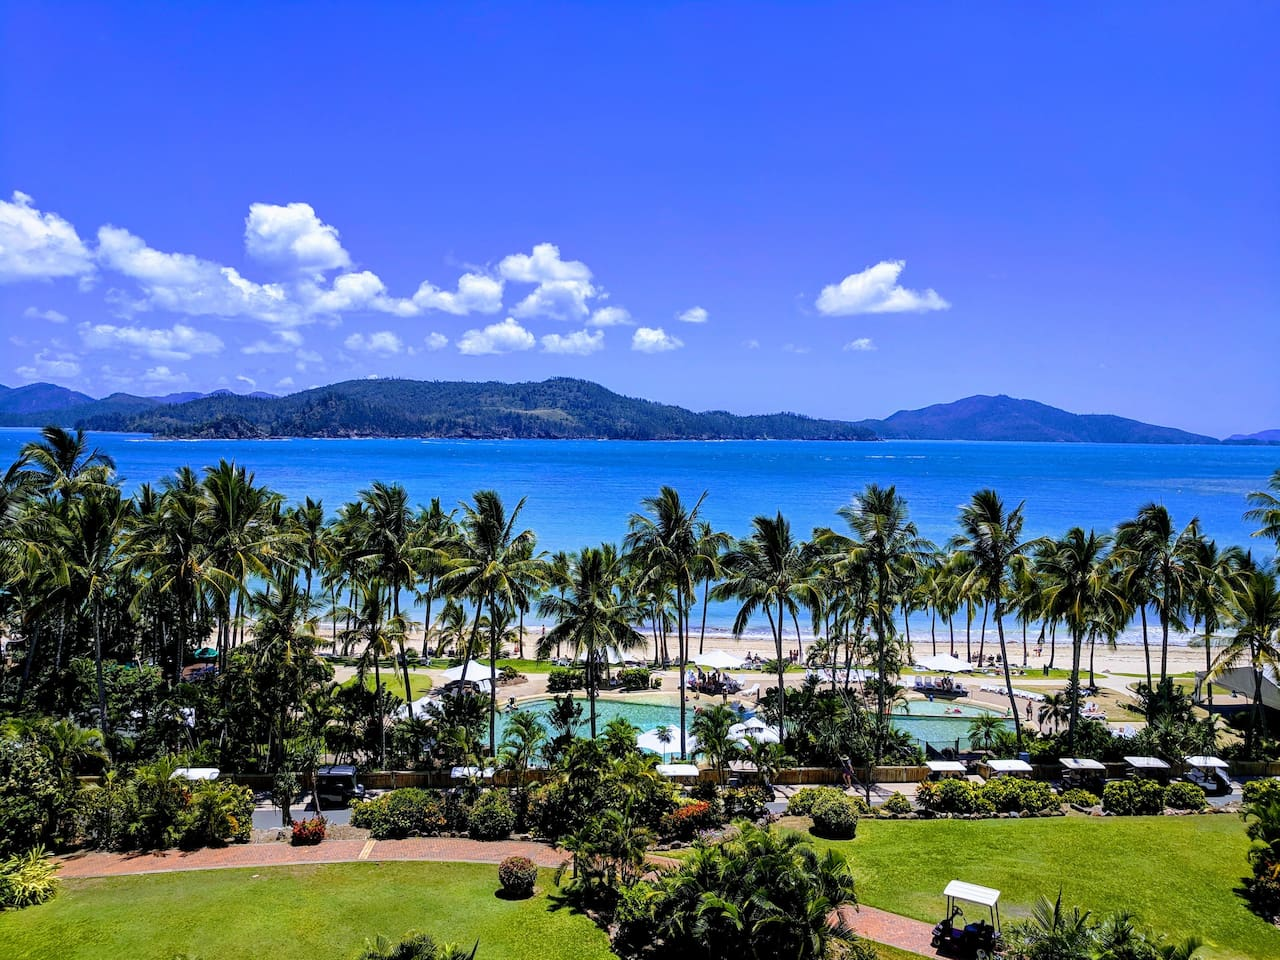 Enjoy ocean views of the beautiful Catseye Beach and Whitsunday Islands from the balcony. (View from the balcony of the apartment)